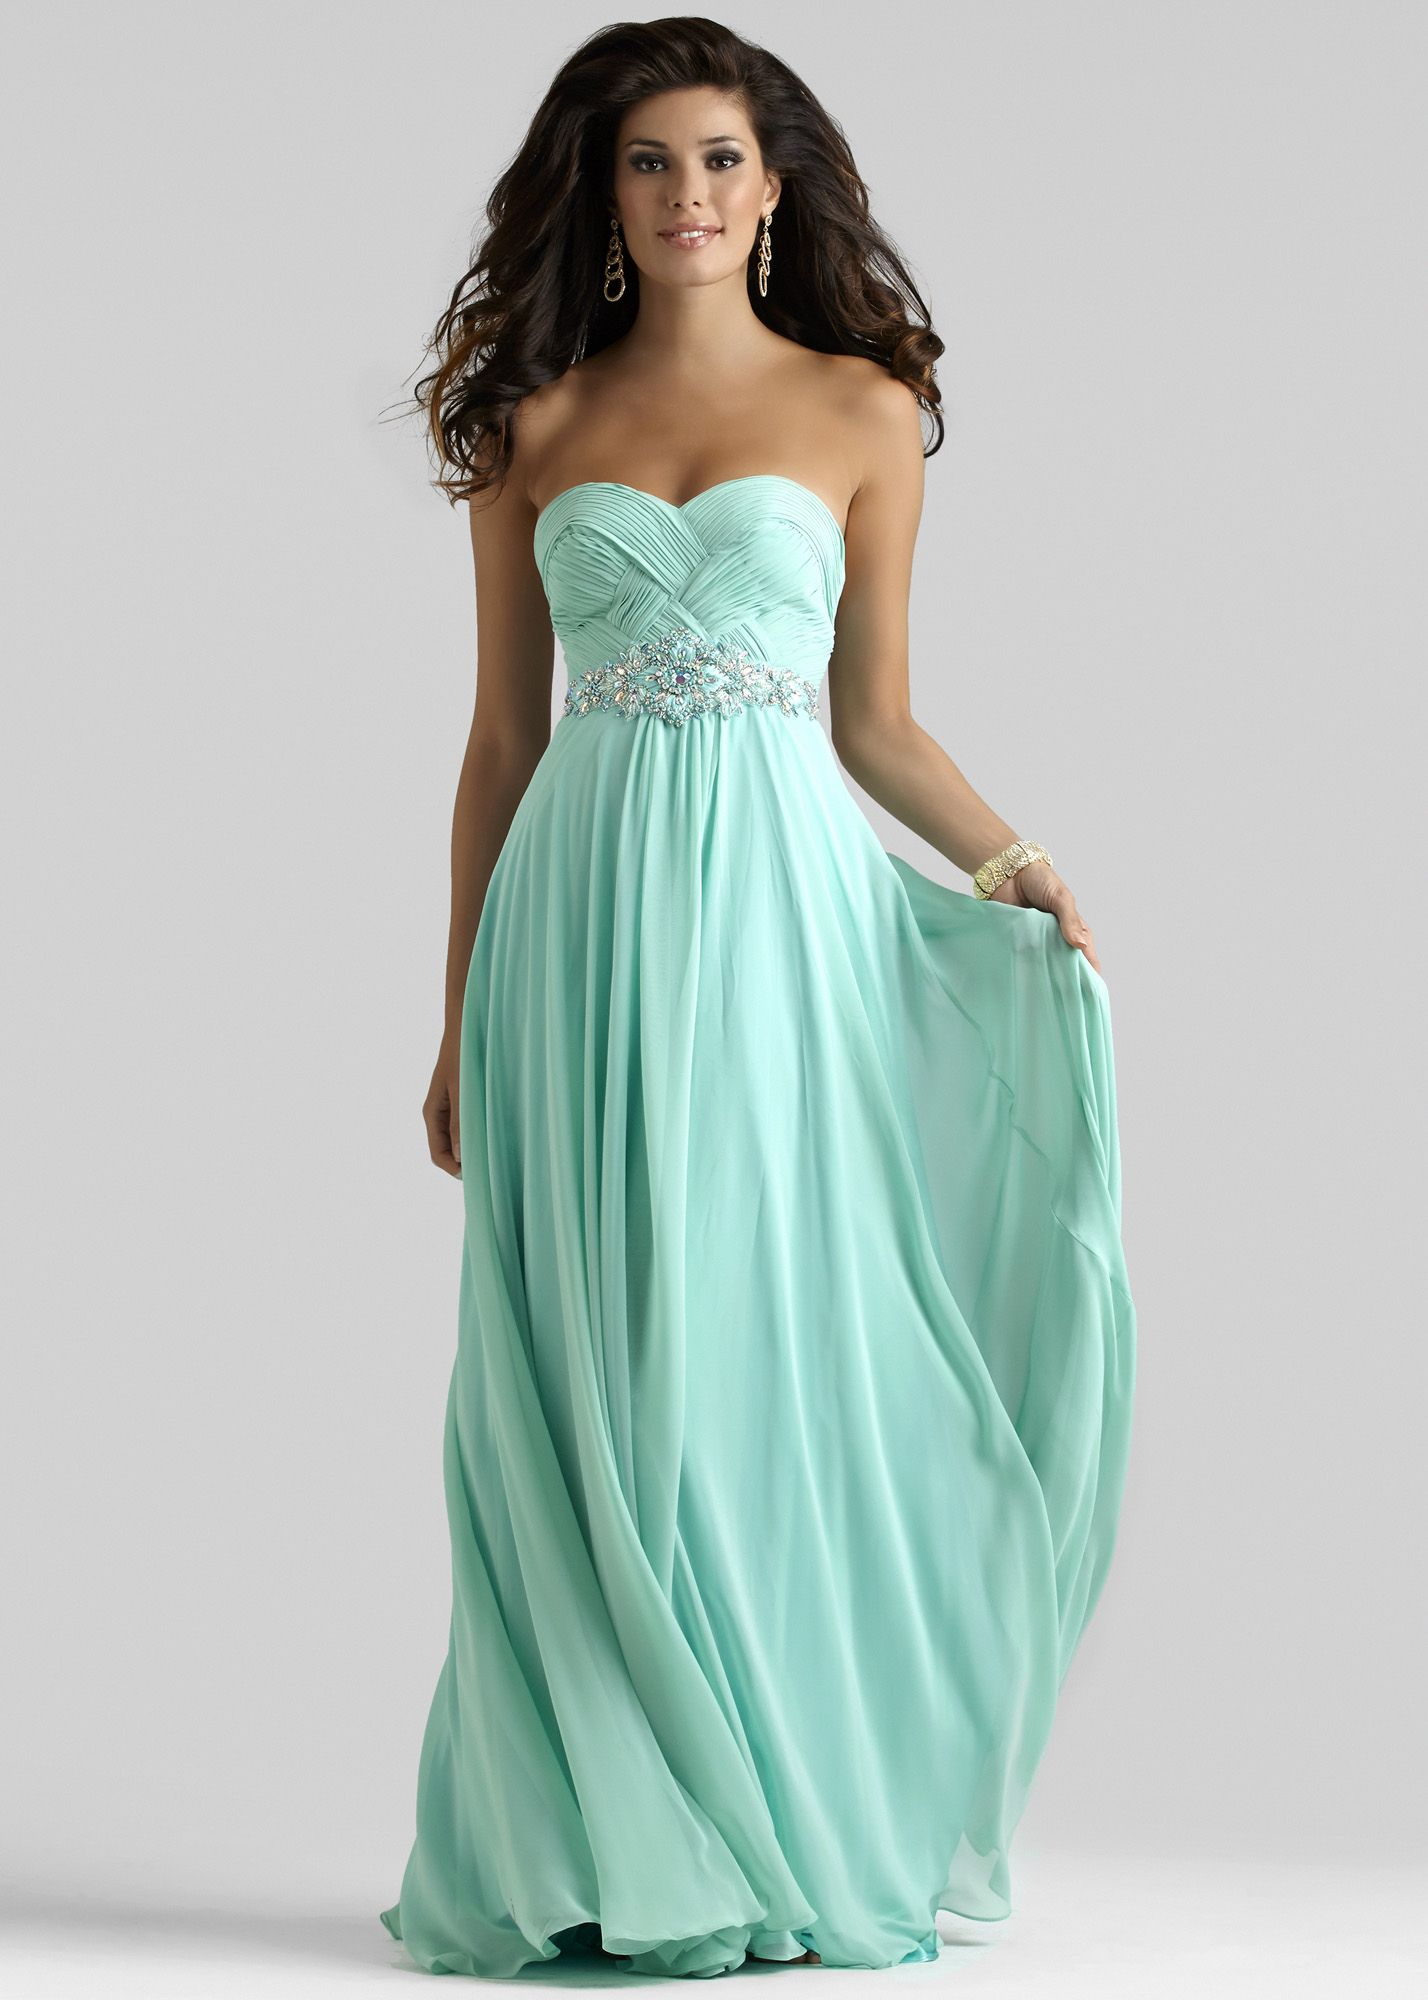 Clarisse 2108 Mint Long Ruched Prom Dresses 2014 | Ball gowns ...